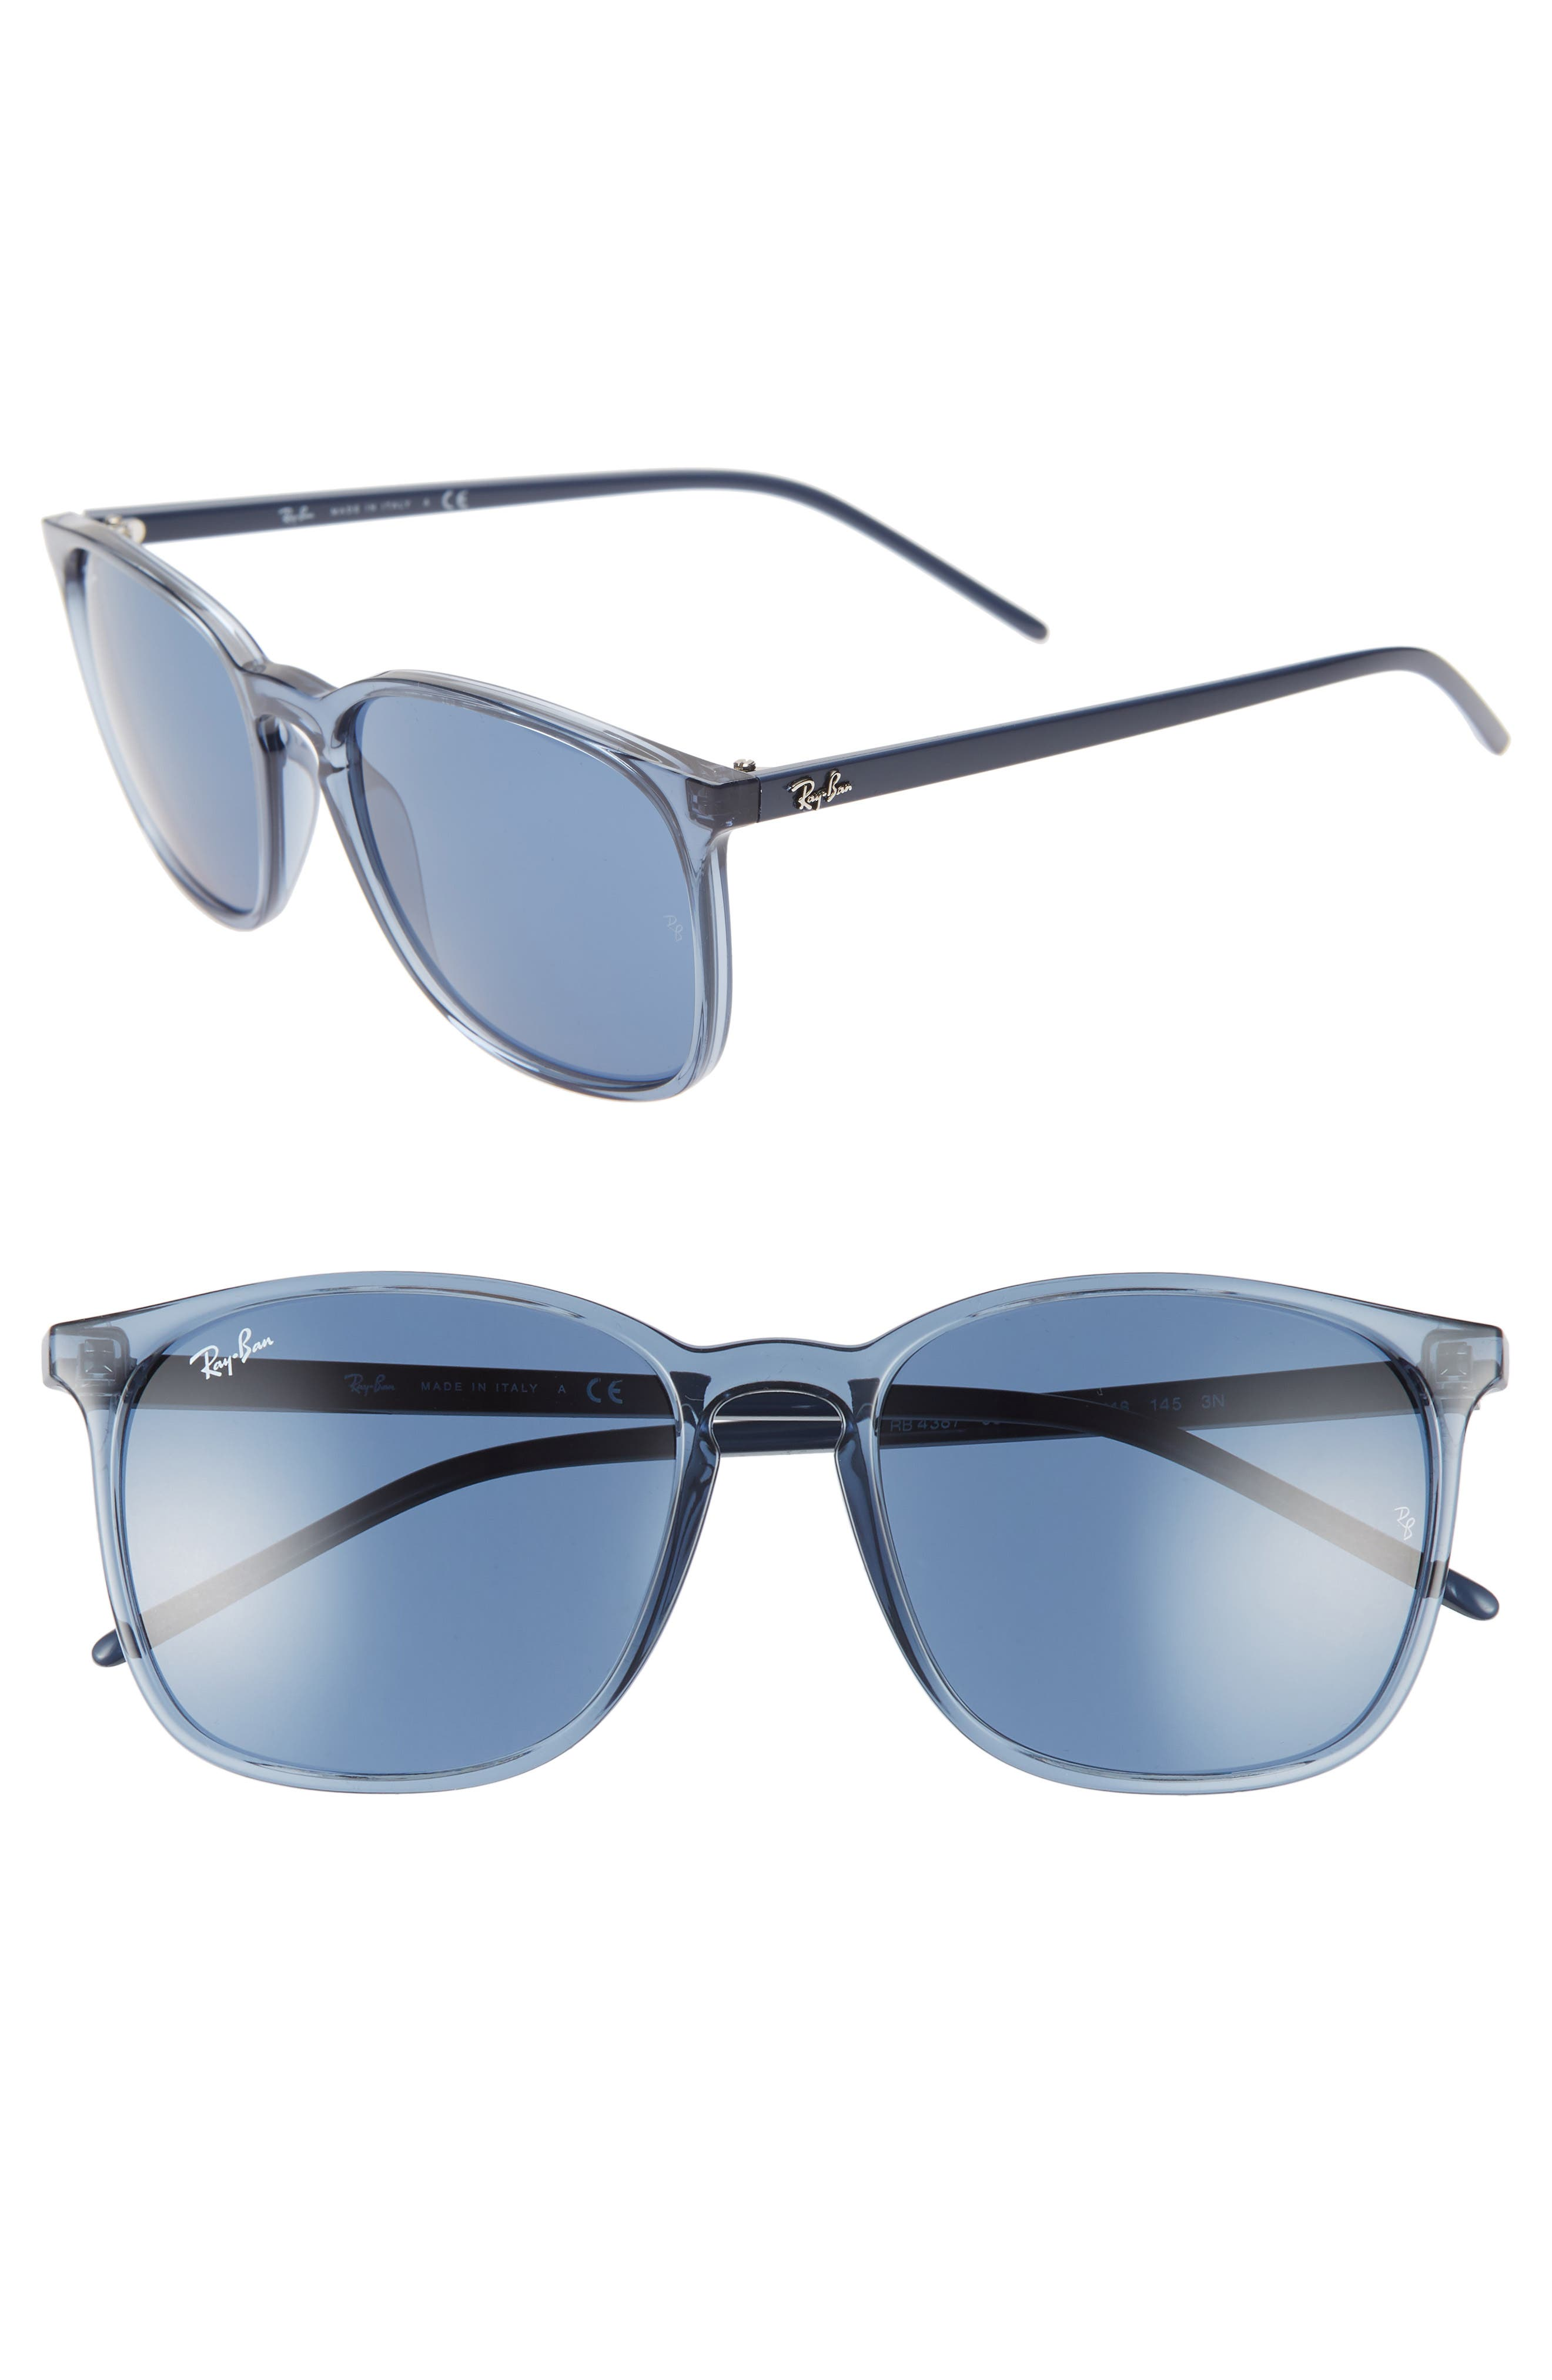 Ray-Ban 5m Sunglasses - Transparent Blue Solid